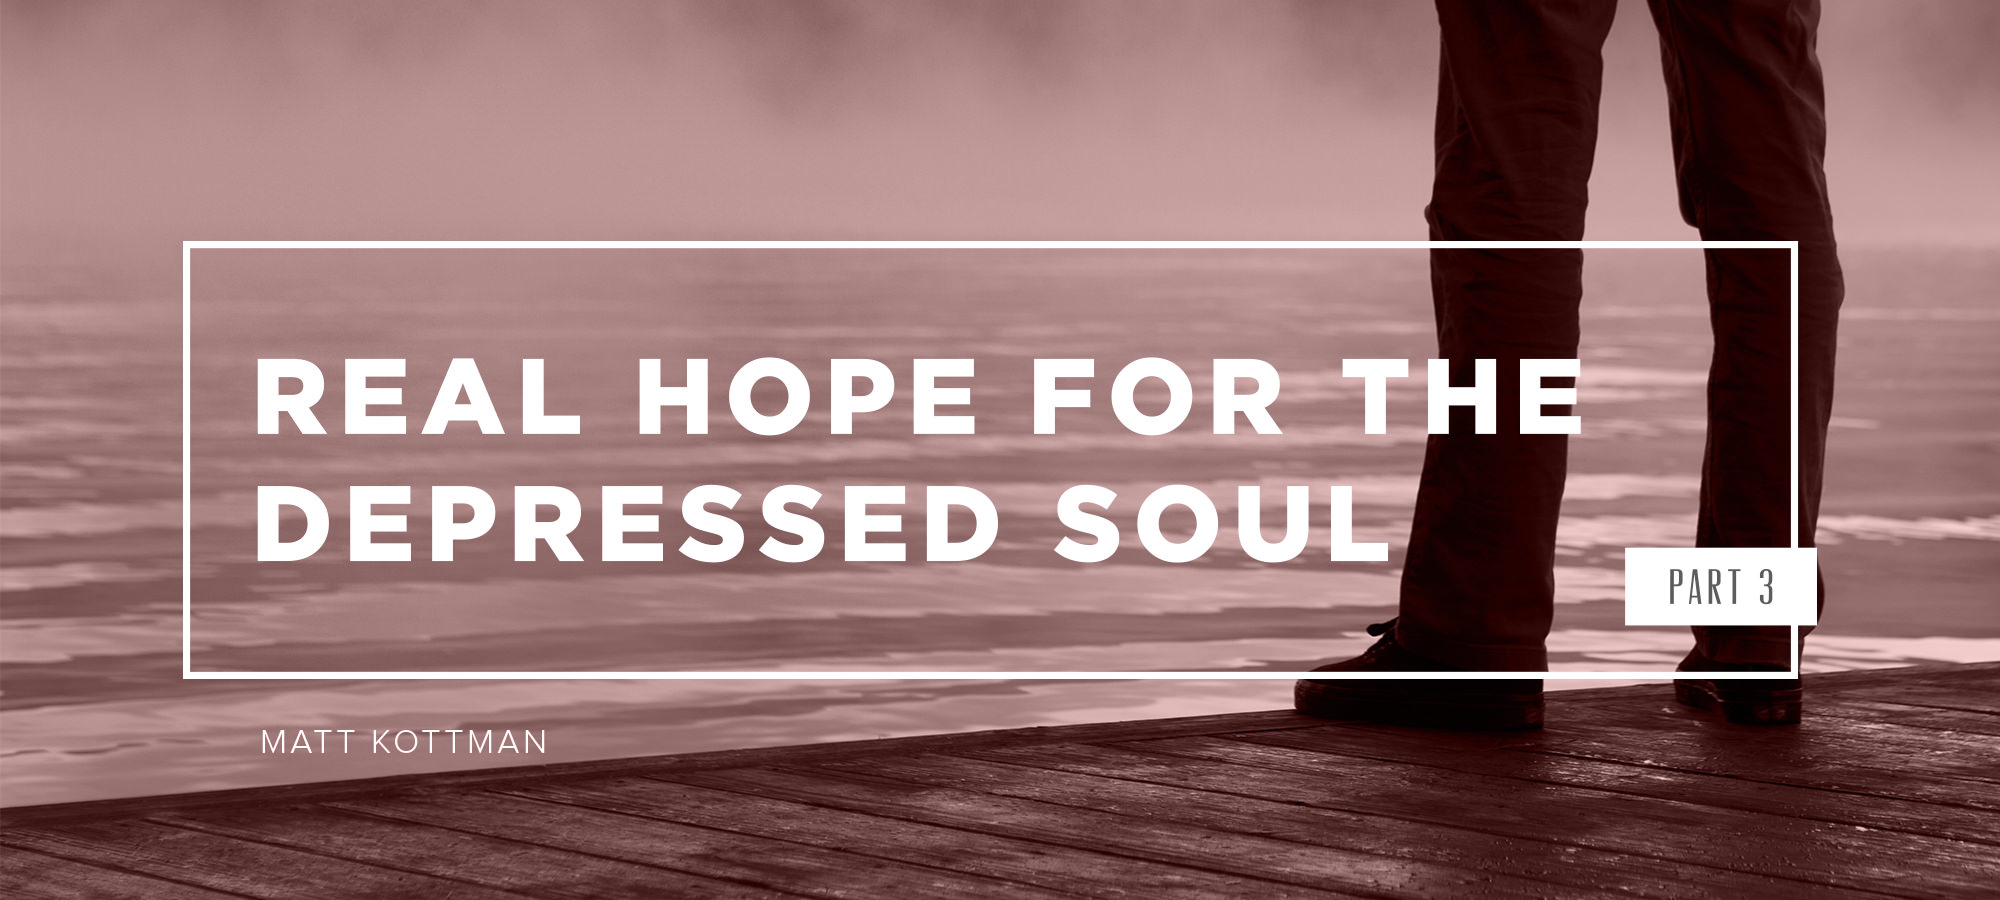 Real Hope for the Depressed Soul - Part 3